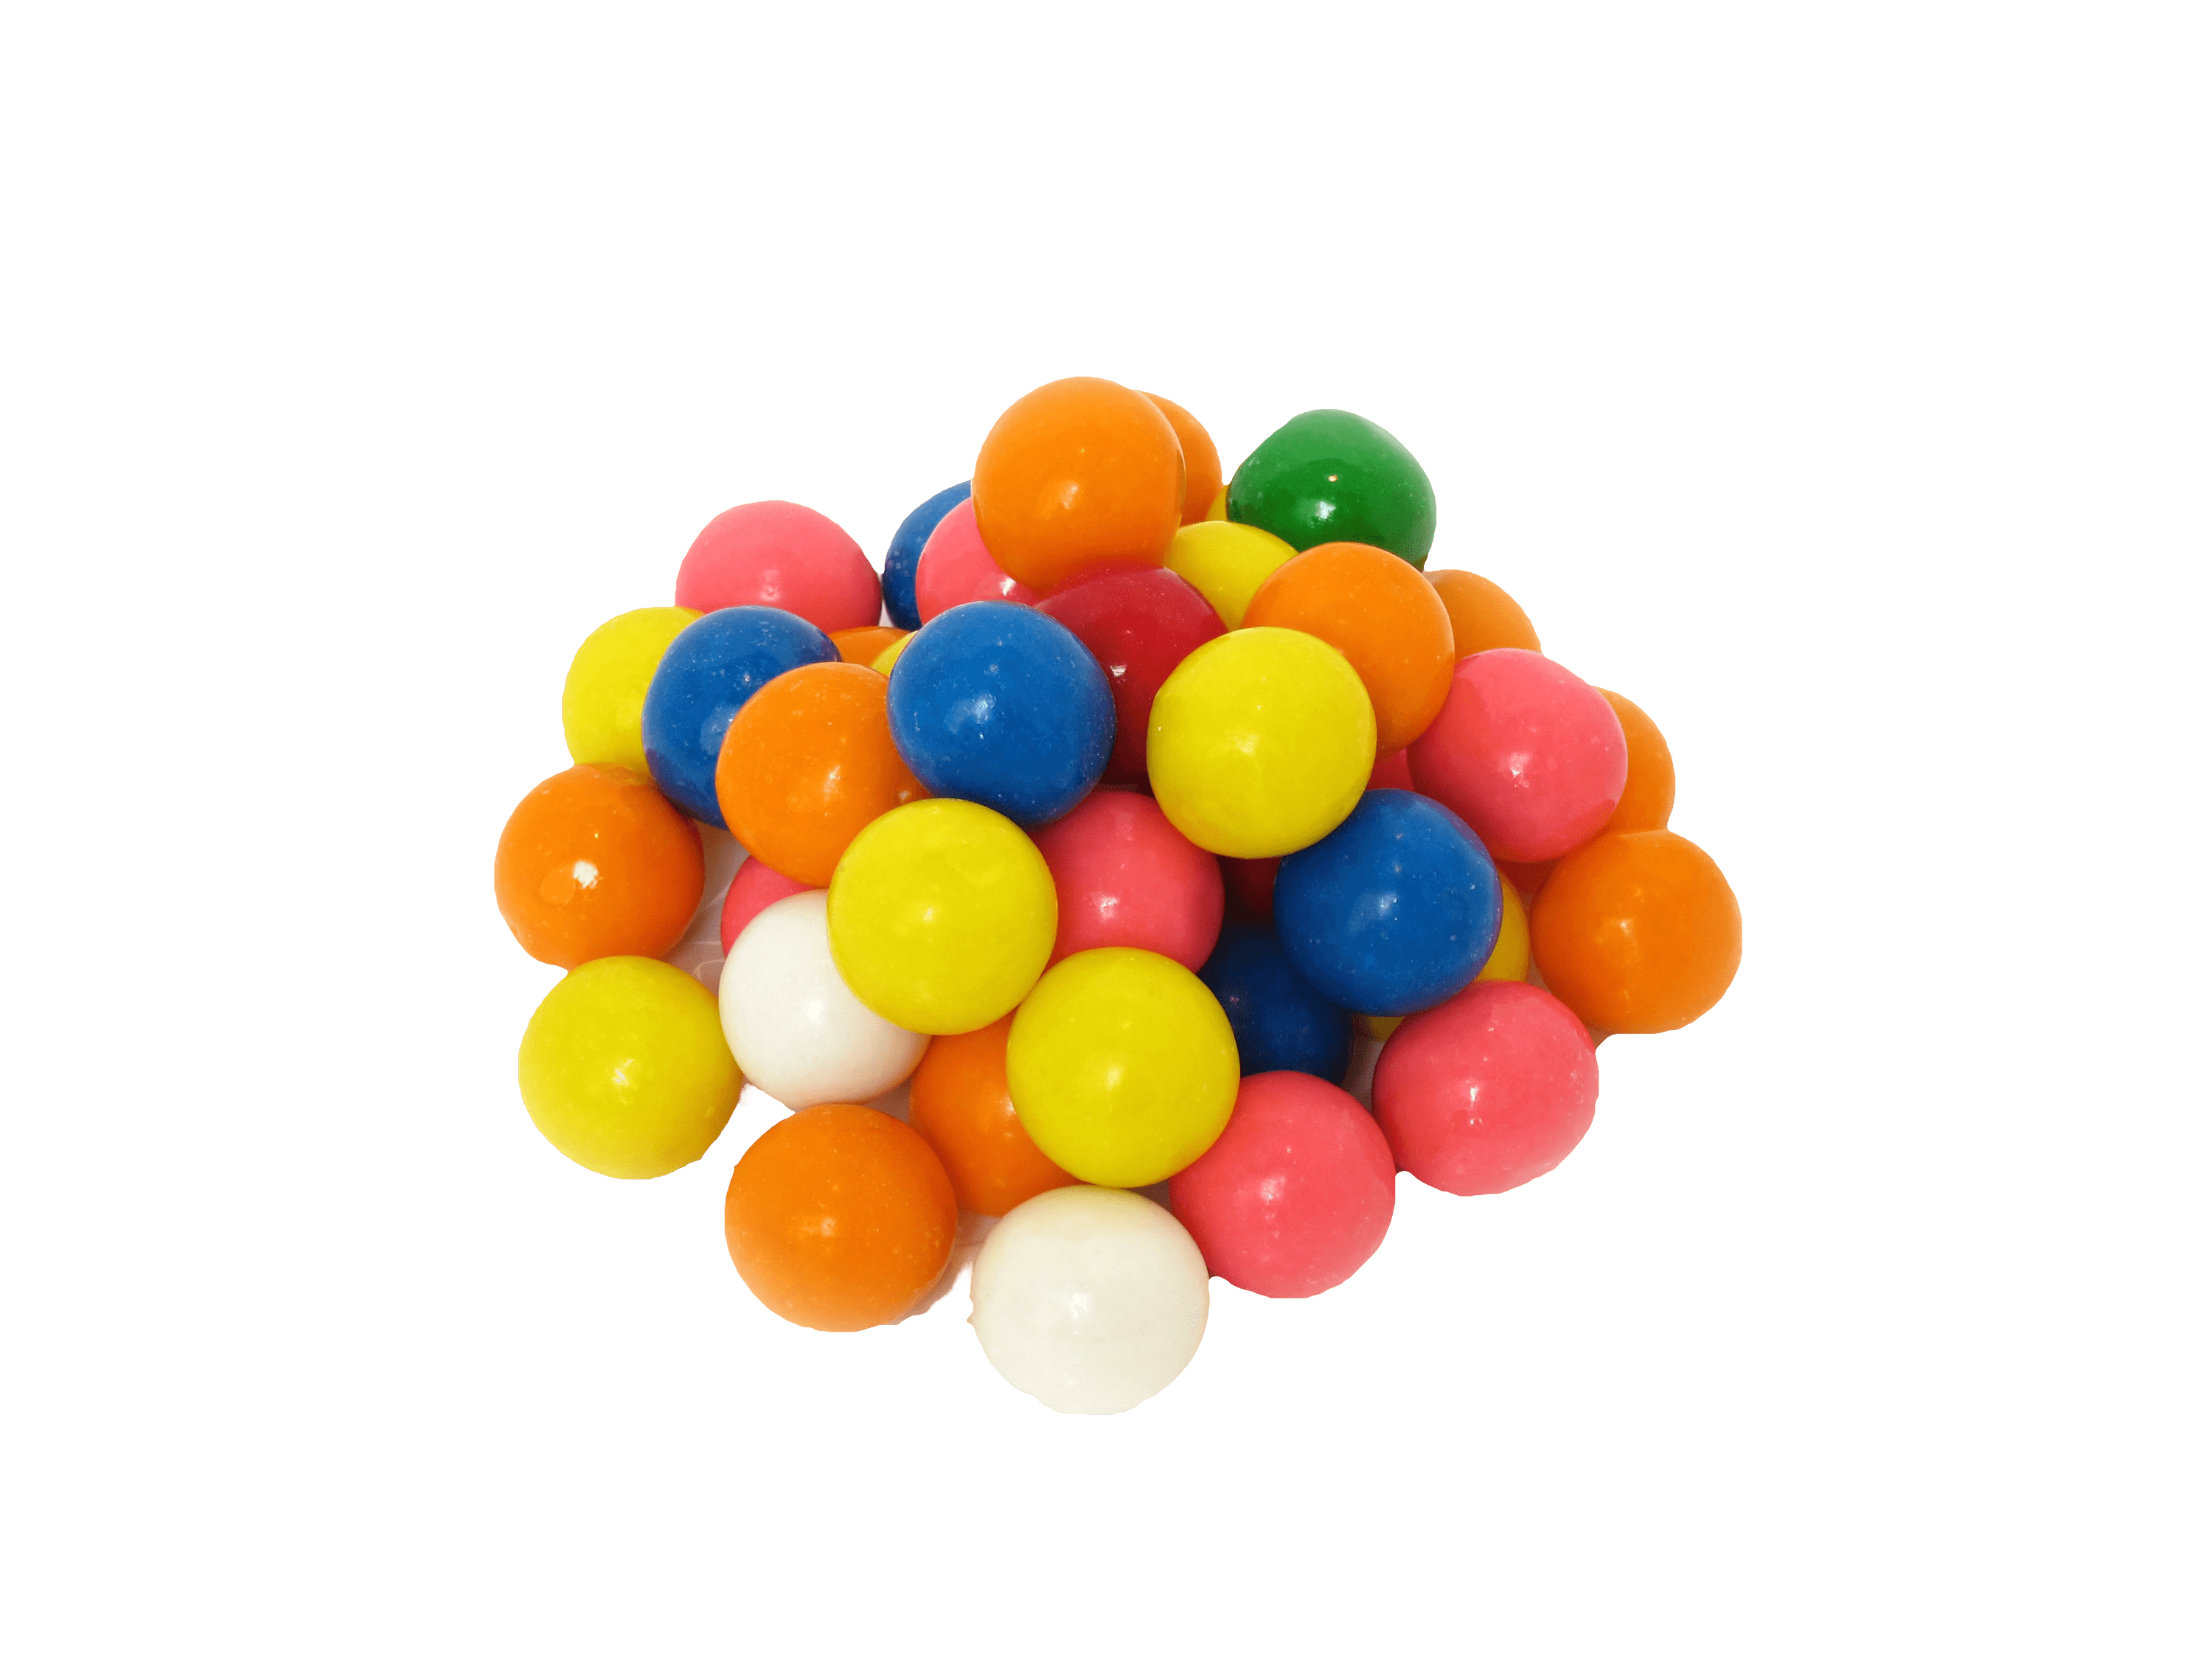 Candies png images stickpng. Clipart candy transparent background